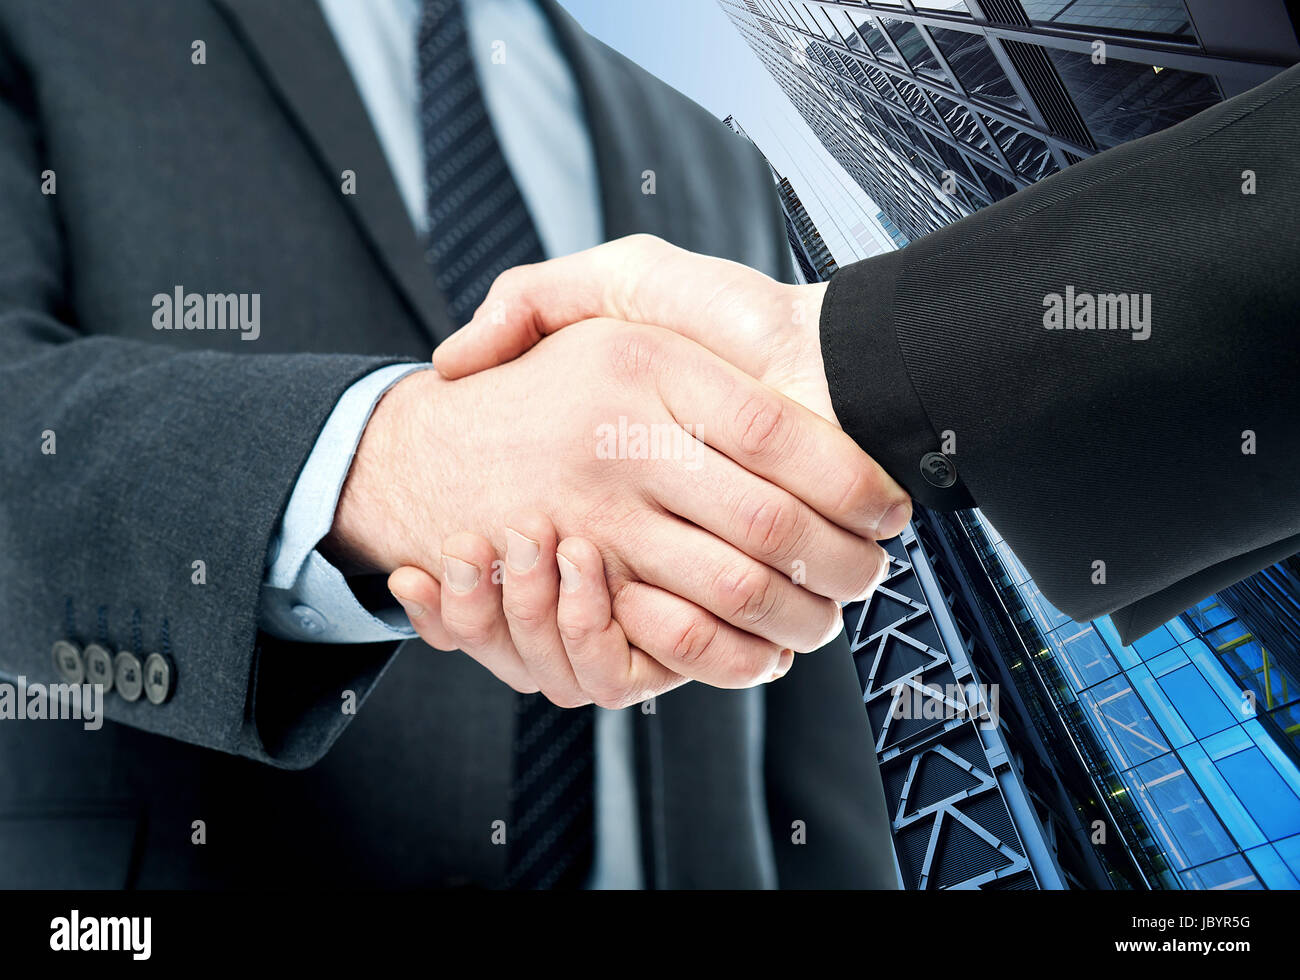 Business handshake, the deal Is finalized. Stock Photo